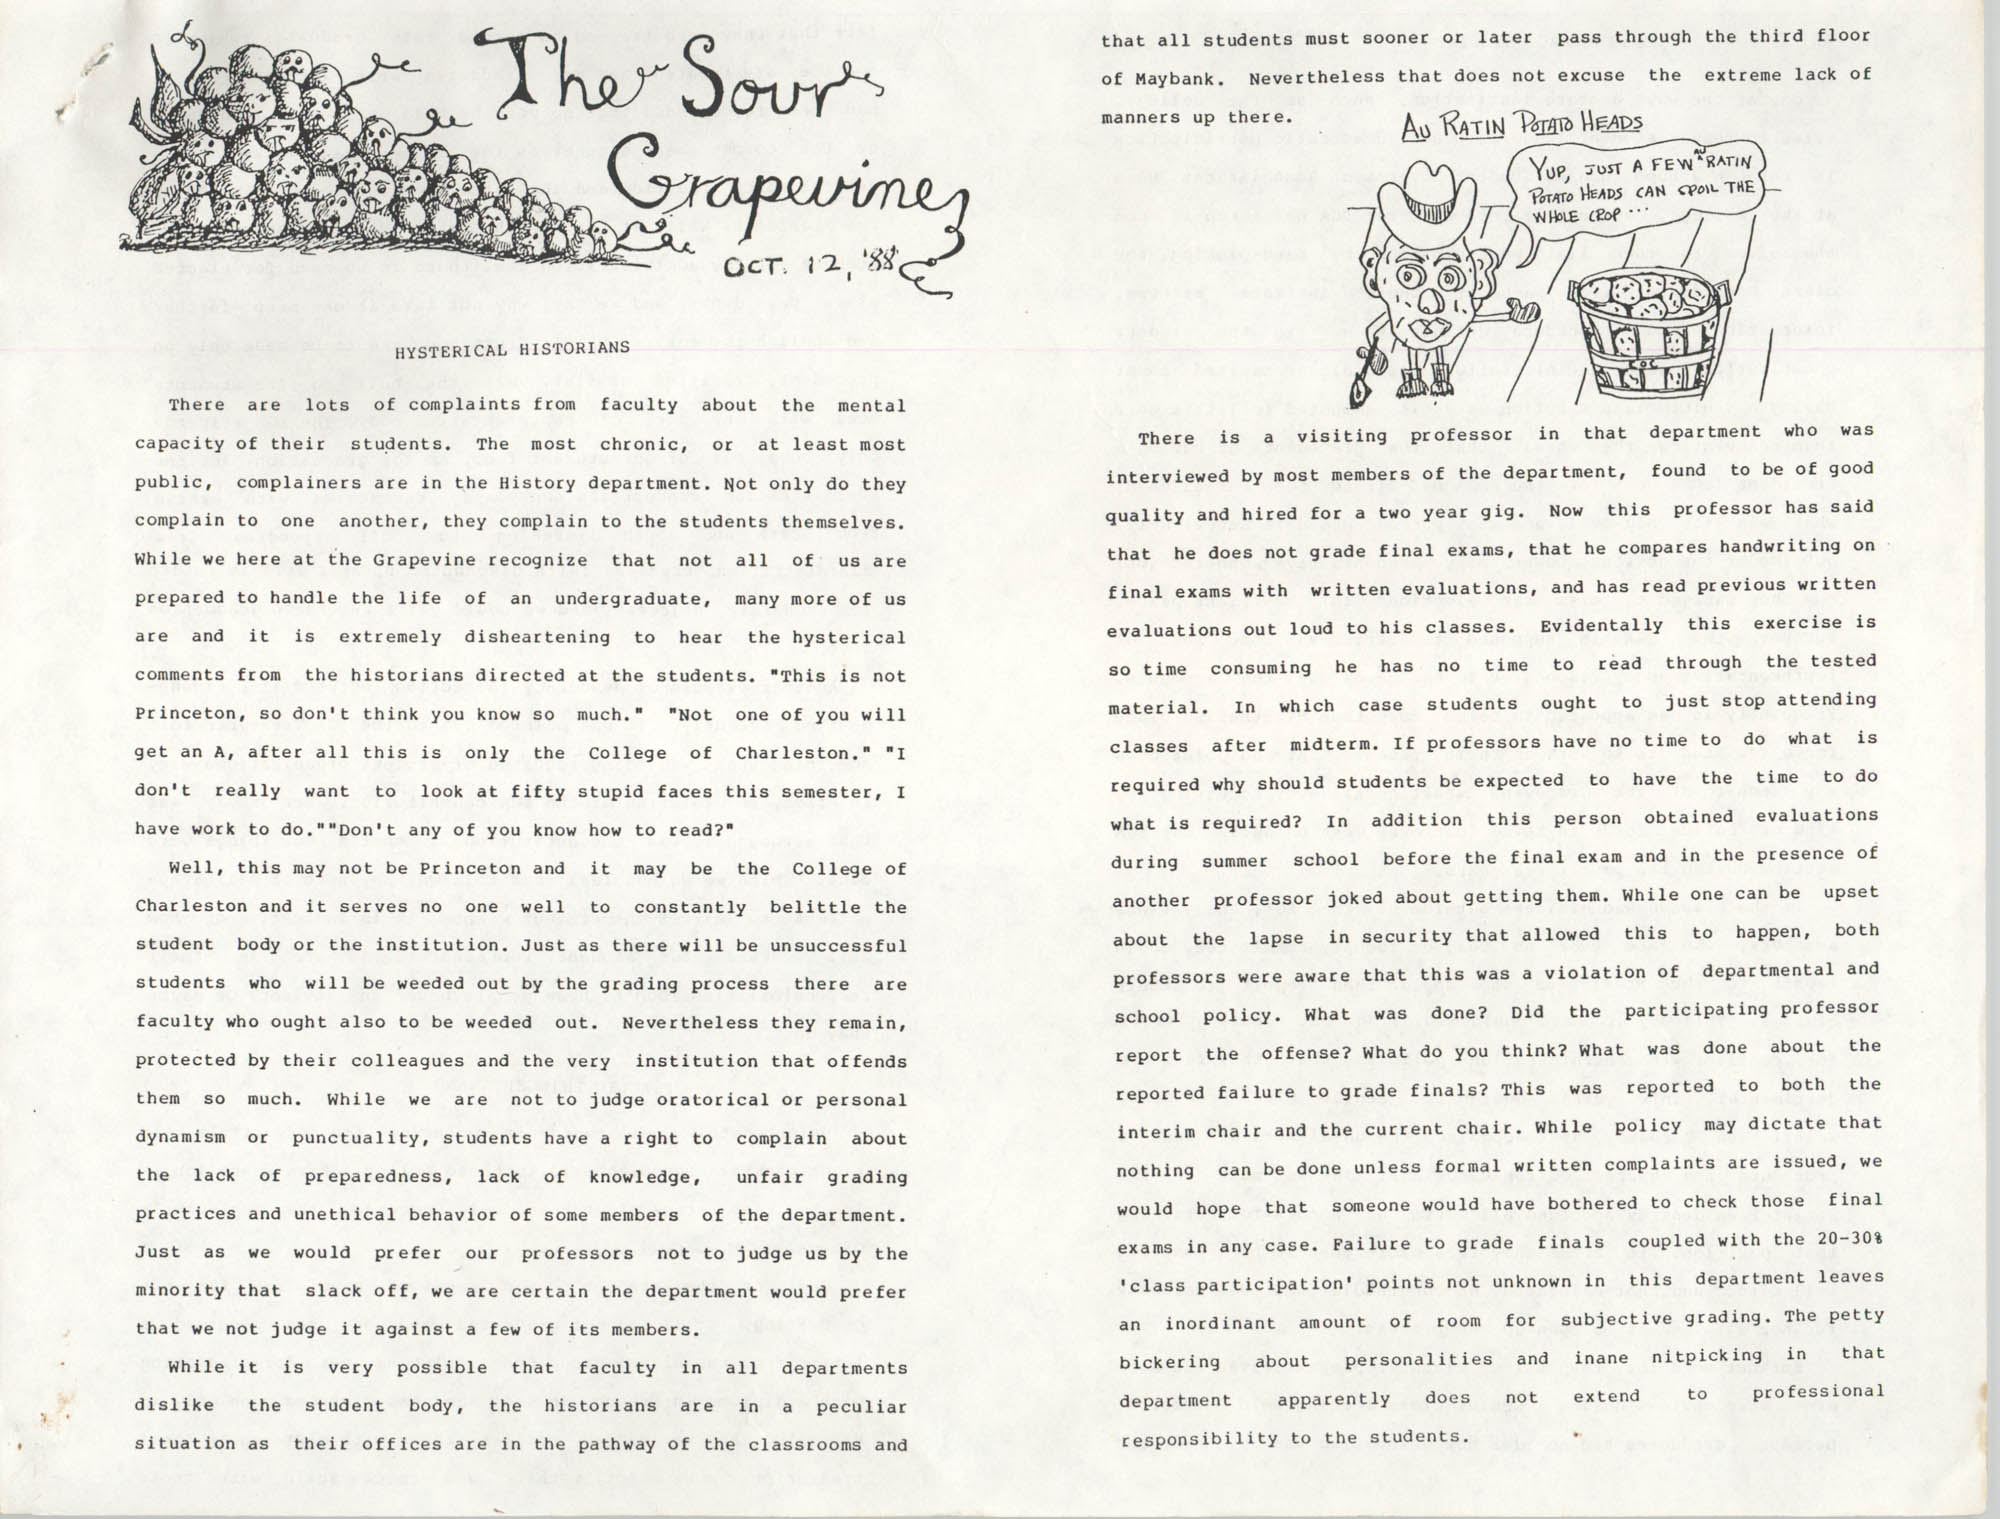 The Sour Grapevine, October 12, 1988